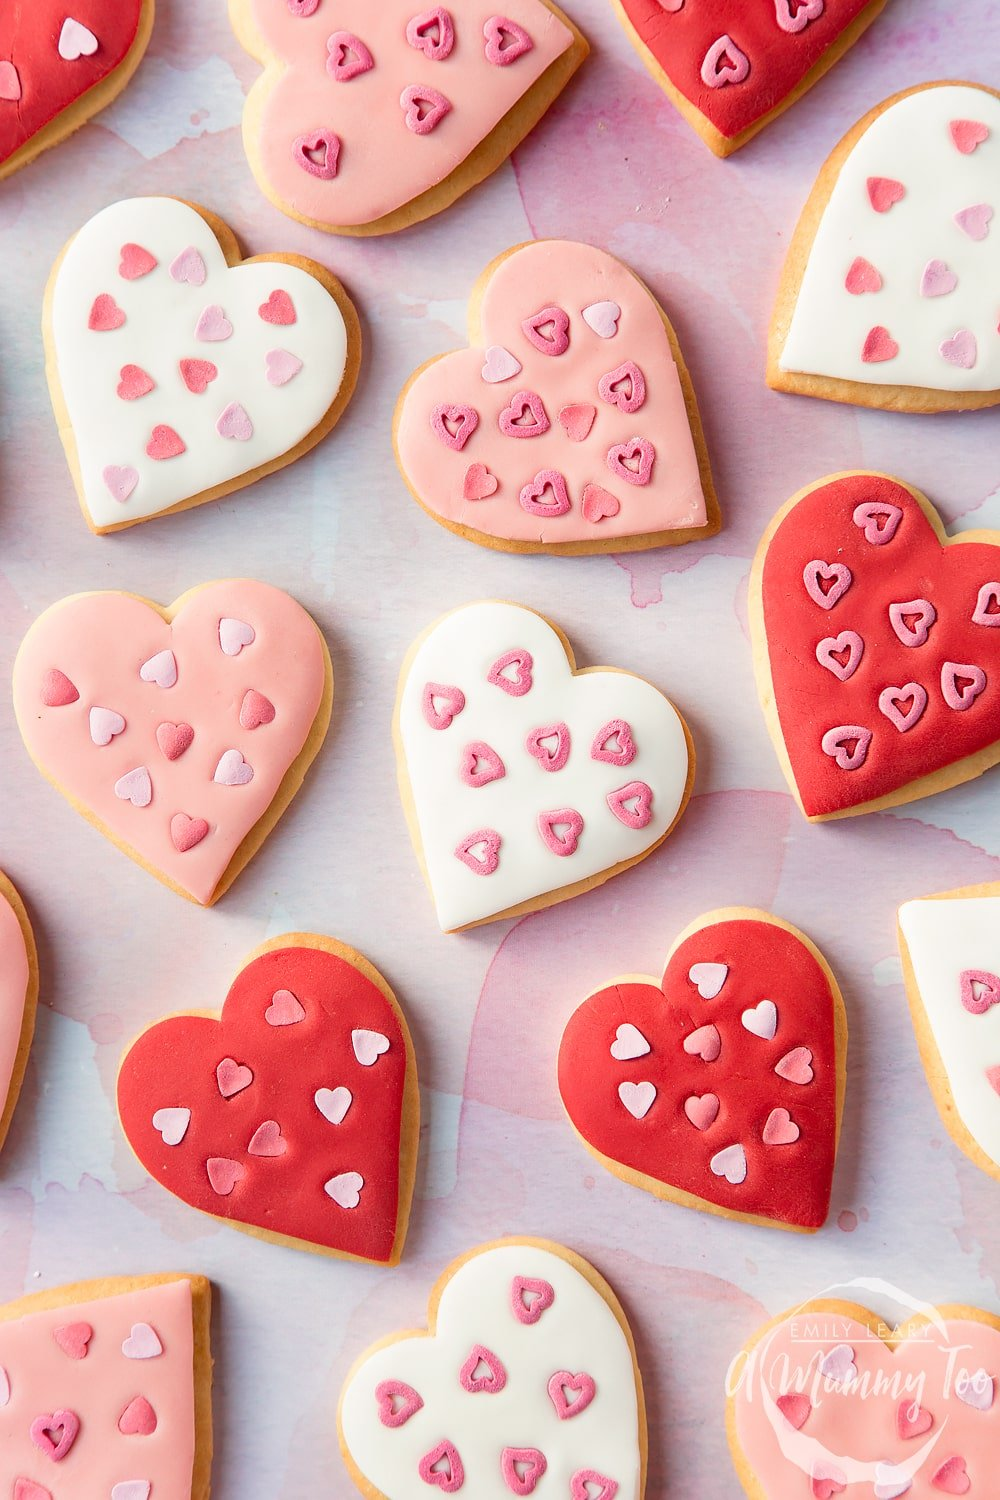 Overhead shot of valentines day cookies topped with fondant and heart shaped sprinkles